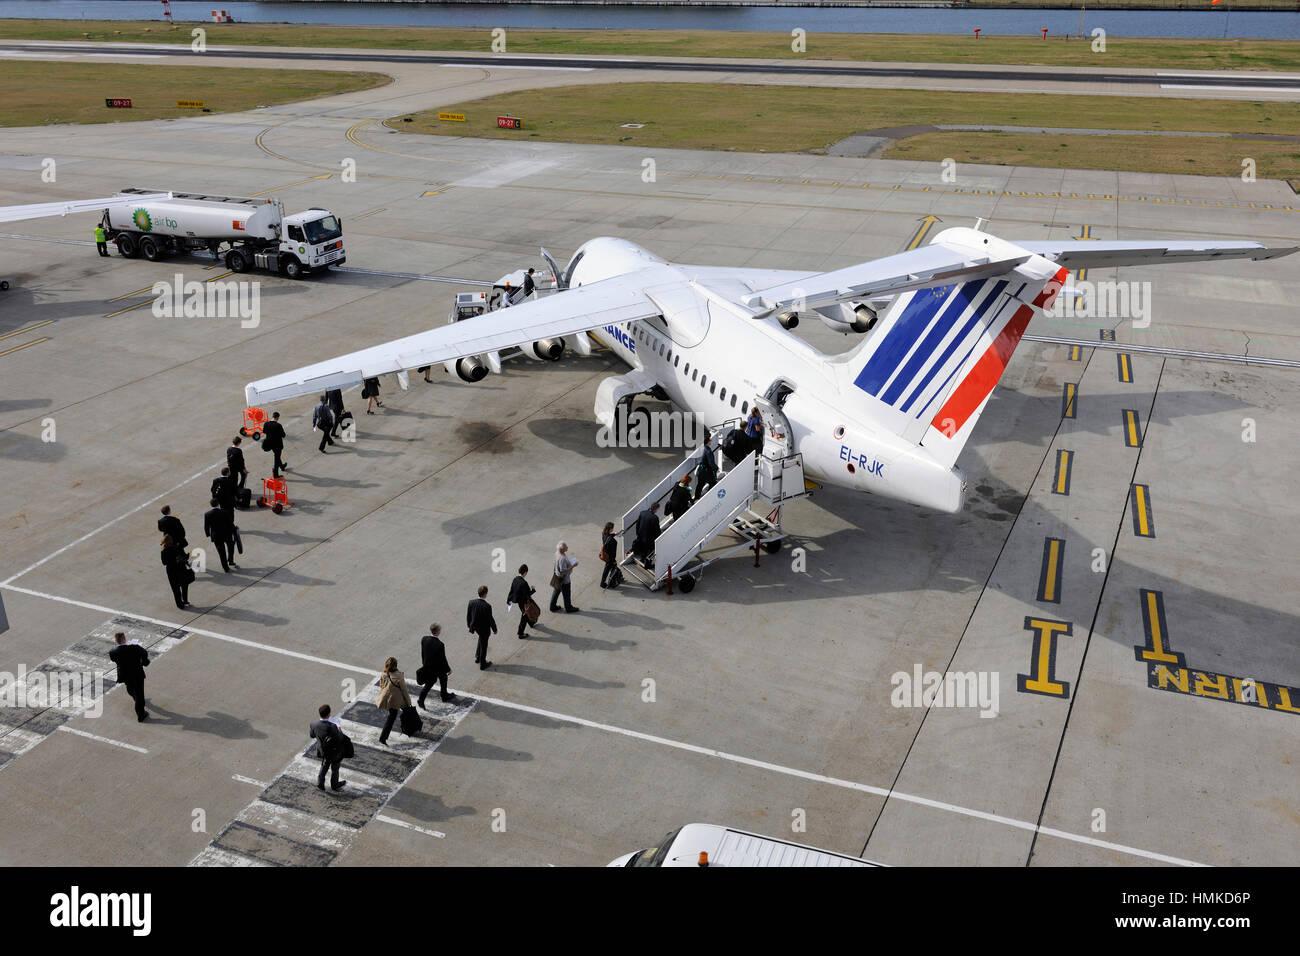 passengers carry-on bags boarding Air France - CityJet BAE 146 Avro RJ-85 parked Air BP Refuelling bowser behind Stock Photo